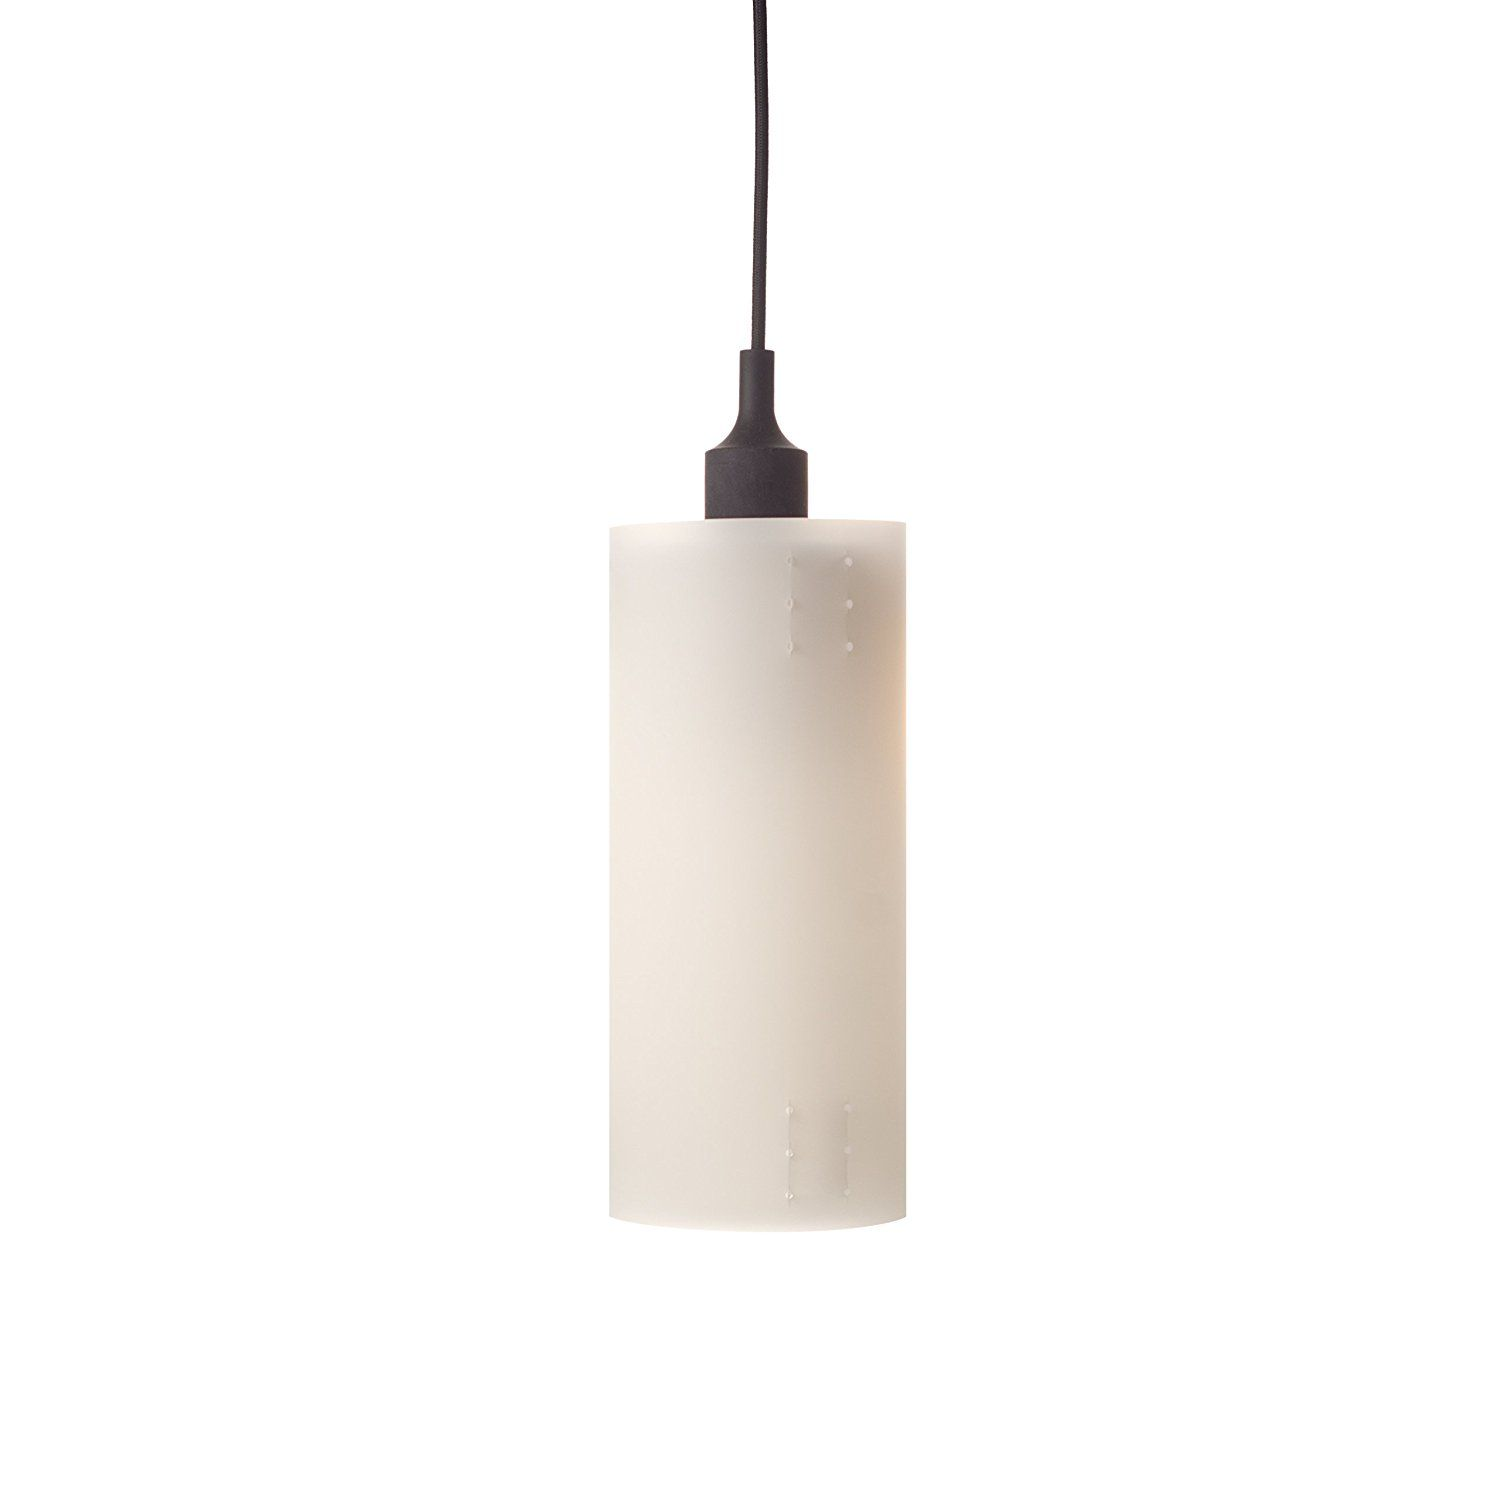 diffused lighting fixtures. Luki Lampshade \u0027California Paper Lantern\u0027 For Soft, Refined, Double-diffused Lighting Diffused Fixtures